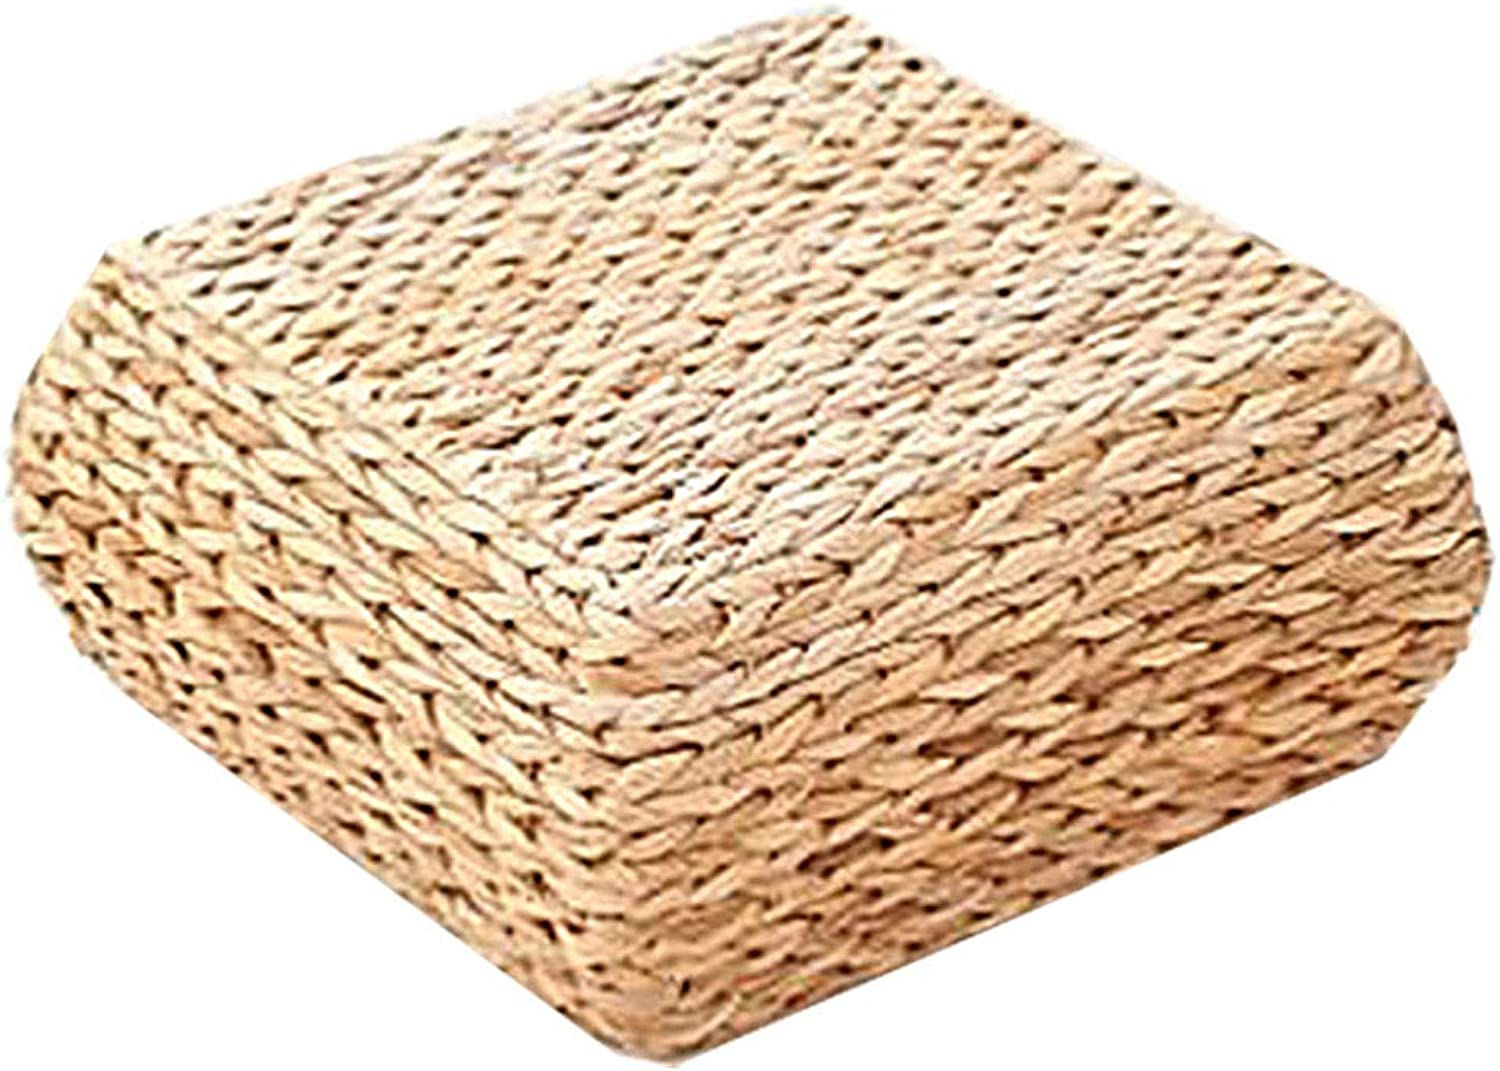 Low Stool Rattan Stool, Creative Home Square Coffee Table Stool, Suitable for Living Room, Bedroom, Dining Room (26 × 26 × 15cm)